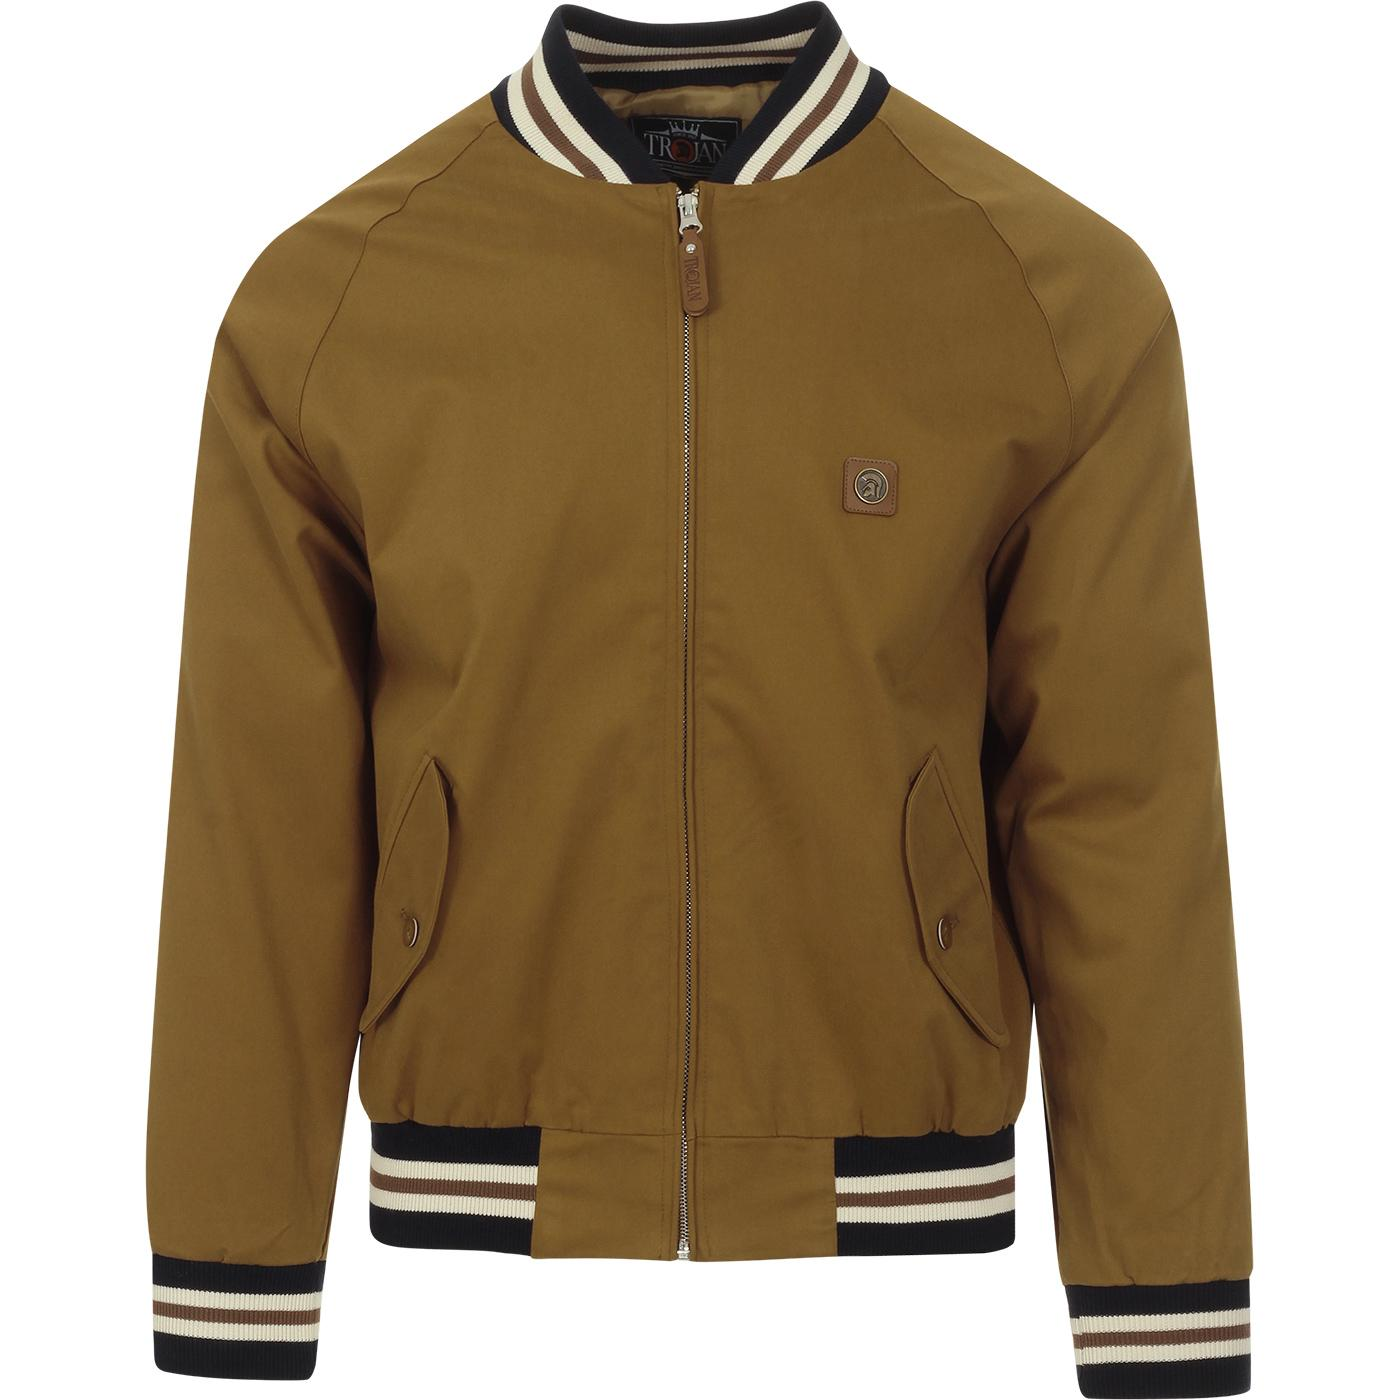 TROJAN RECORDS Classic Mod Monkey Jacket (Tan)